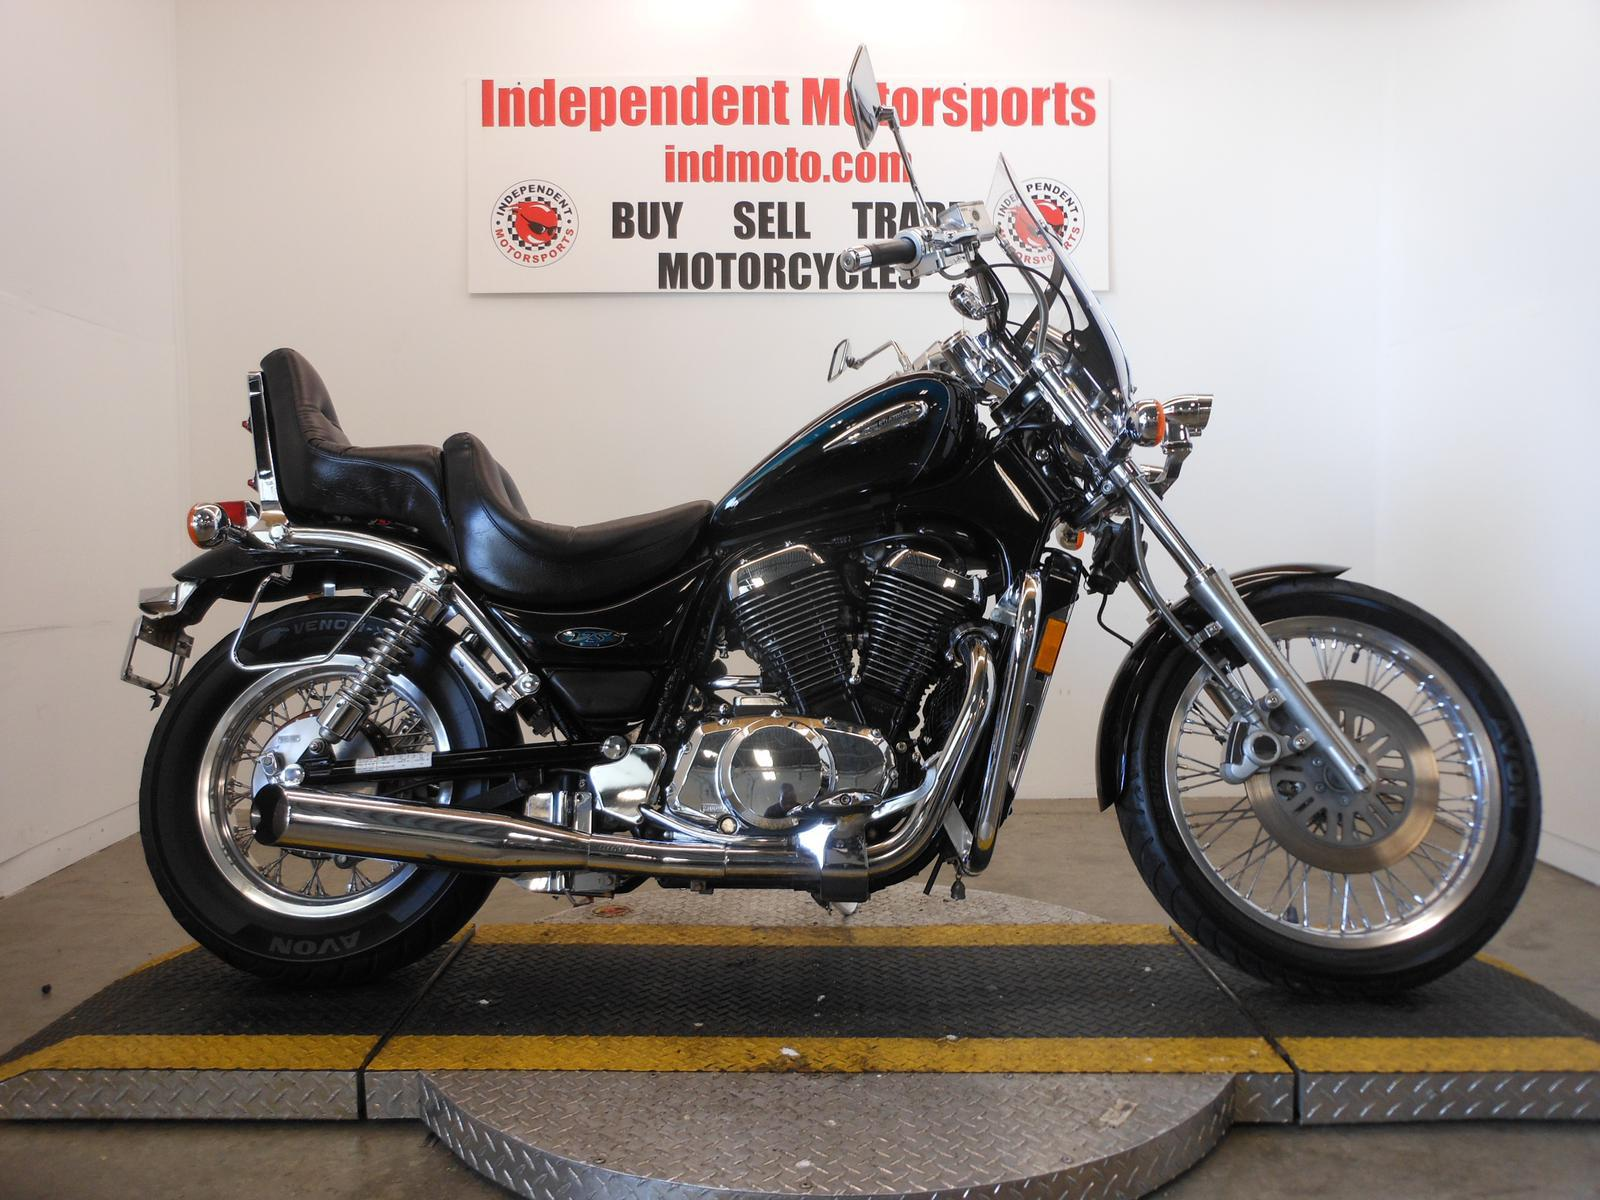 Cycle Search International | EN - Motorcycles - Cycle Search